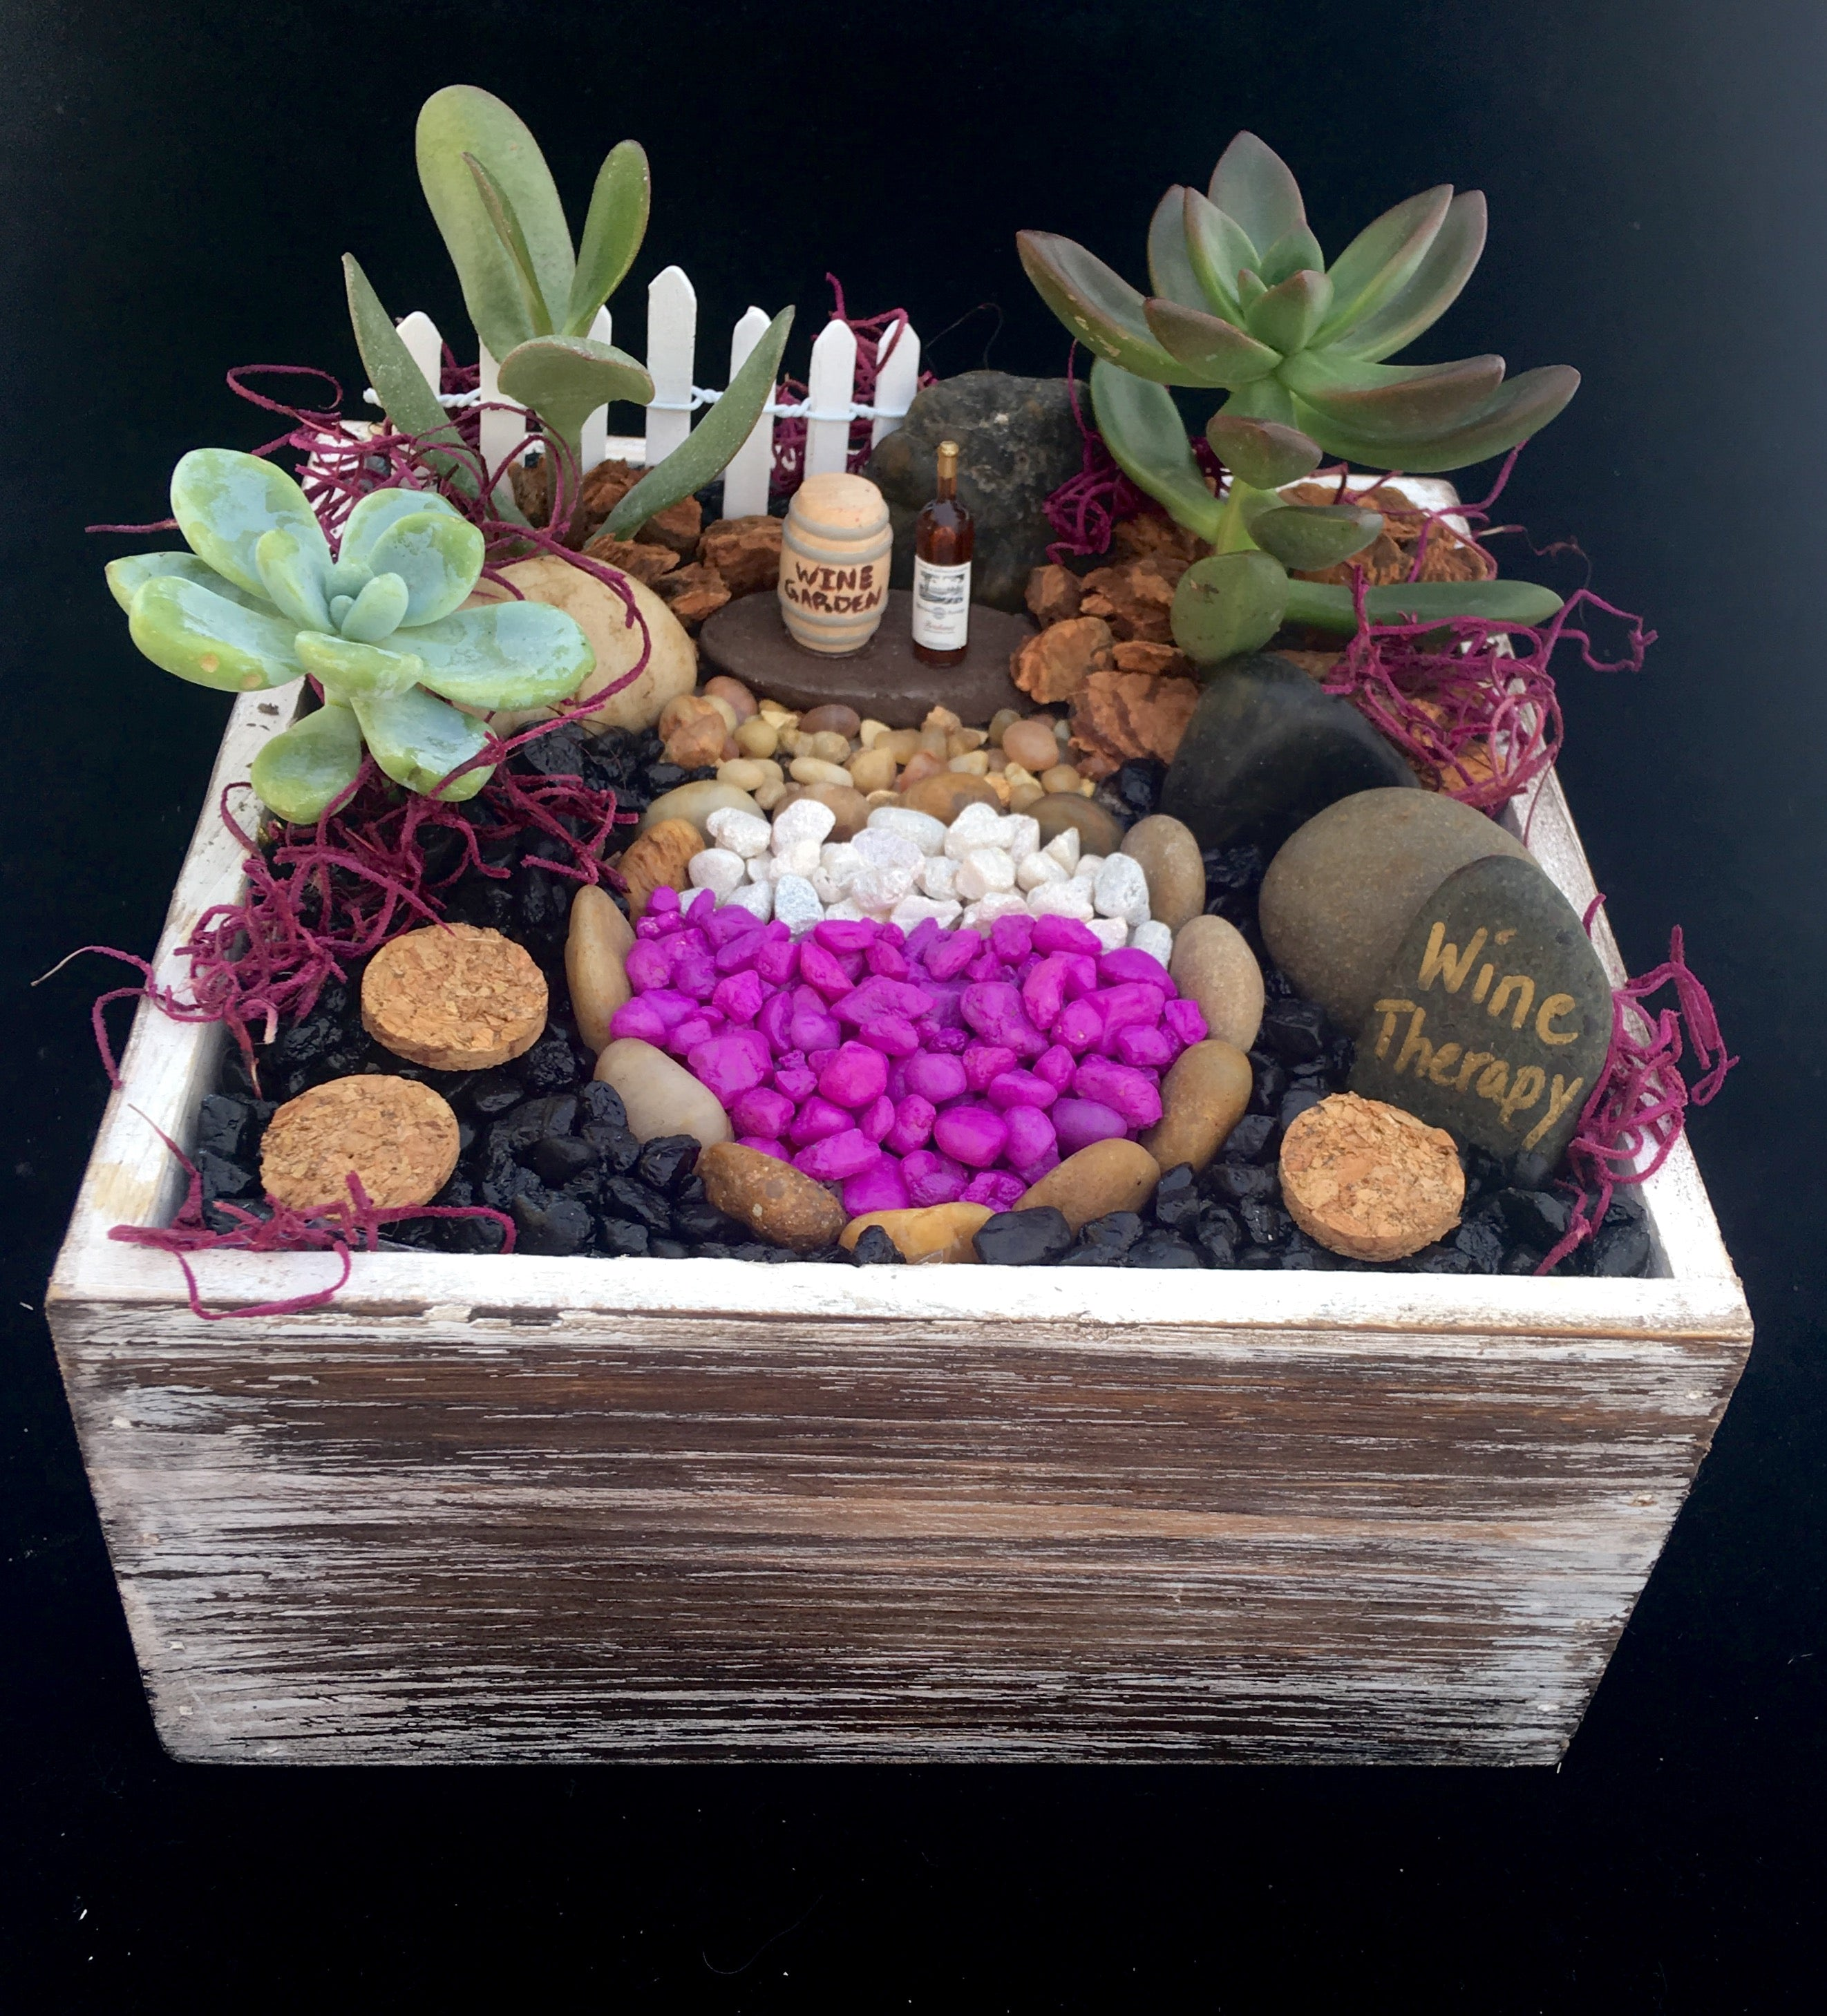 Wine Therapy Garden Planter Kit